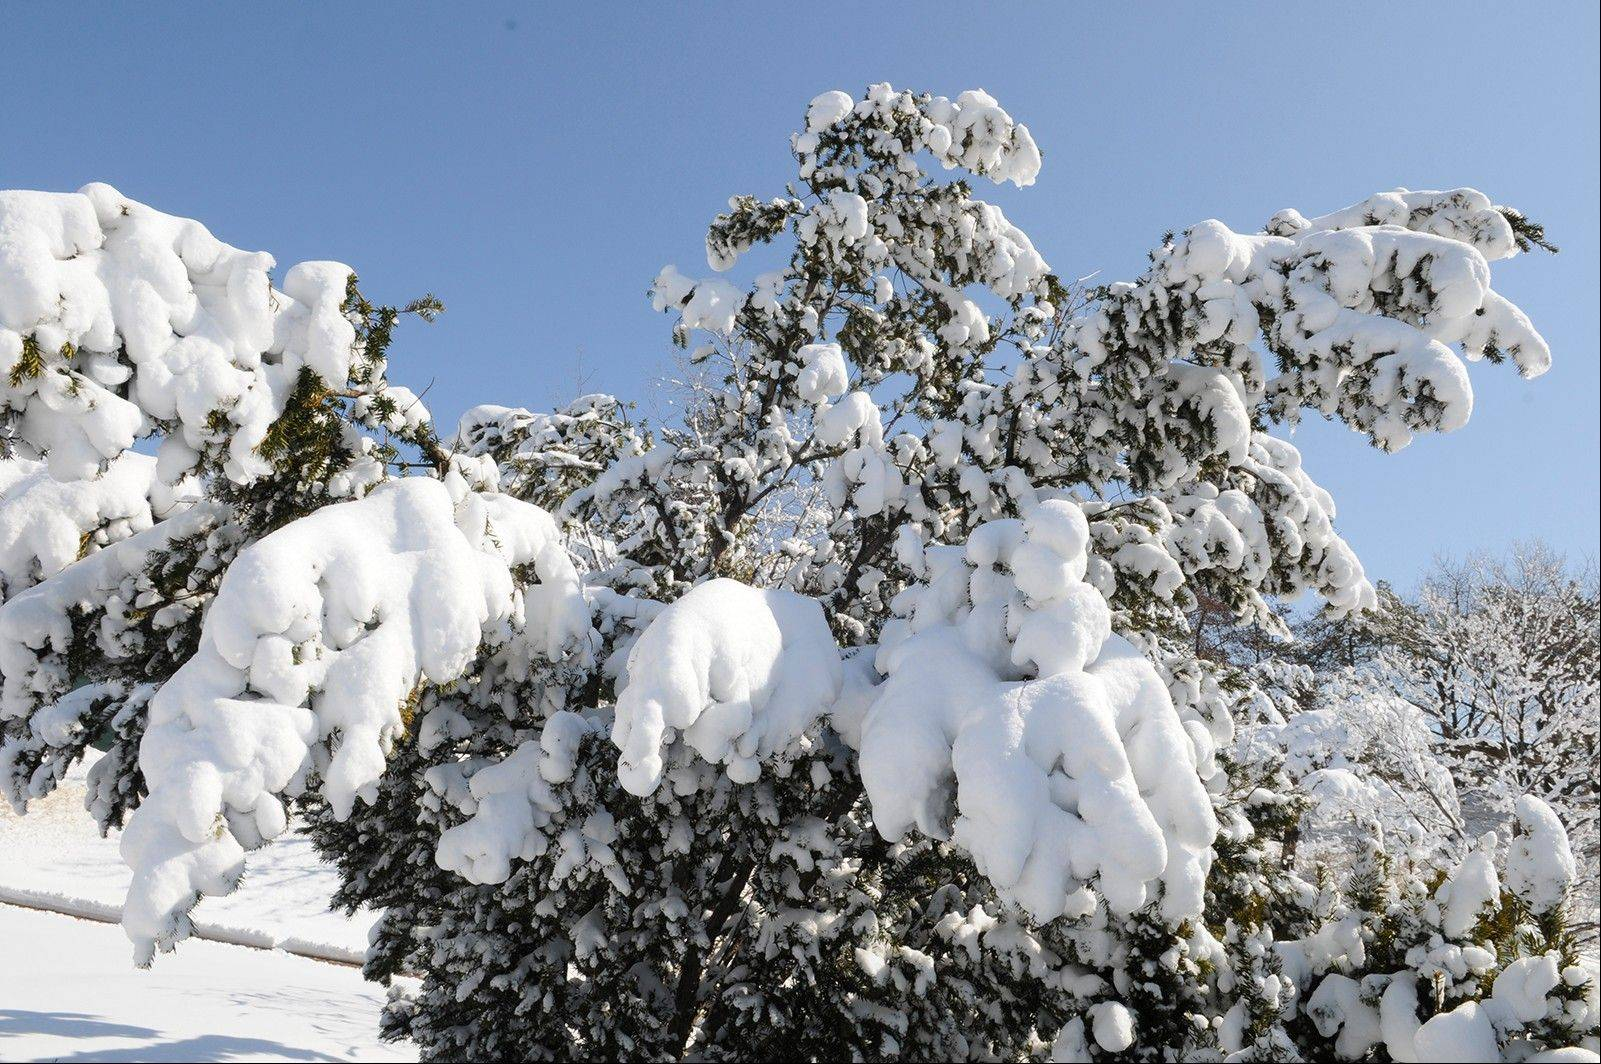 As the snow piles up, branches can be damaged under its weight.